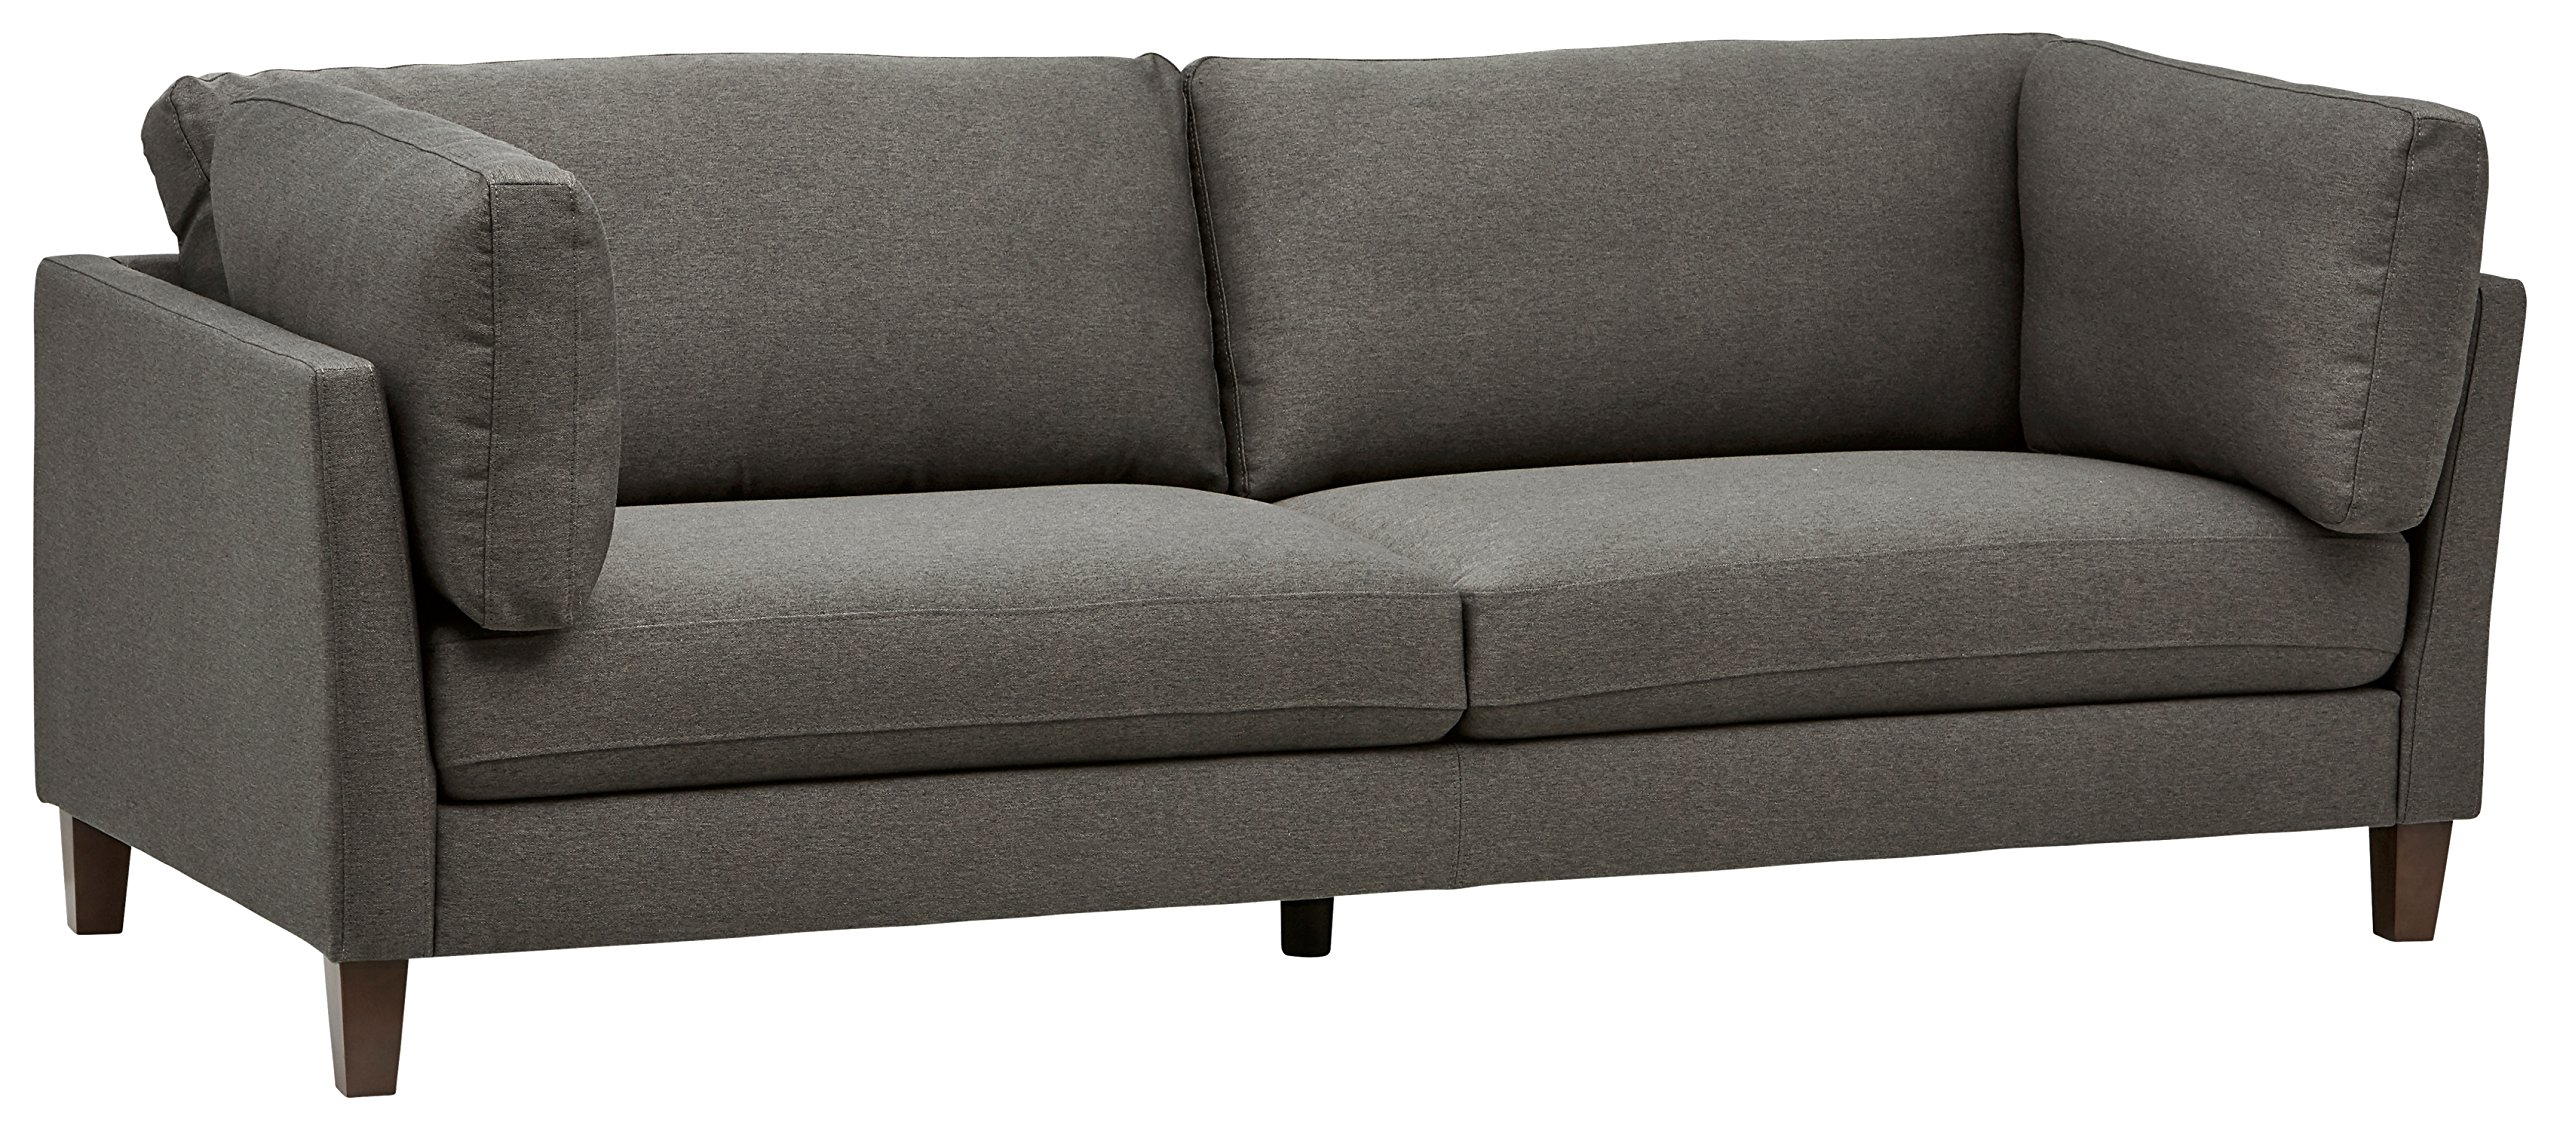 Rivet Midtown Mid-Century Modern Upholstered Sectional Sofa Couch, 92.1''W, Charcoal by Rivet